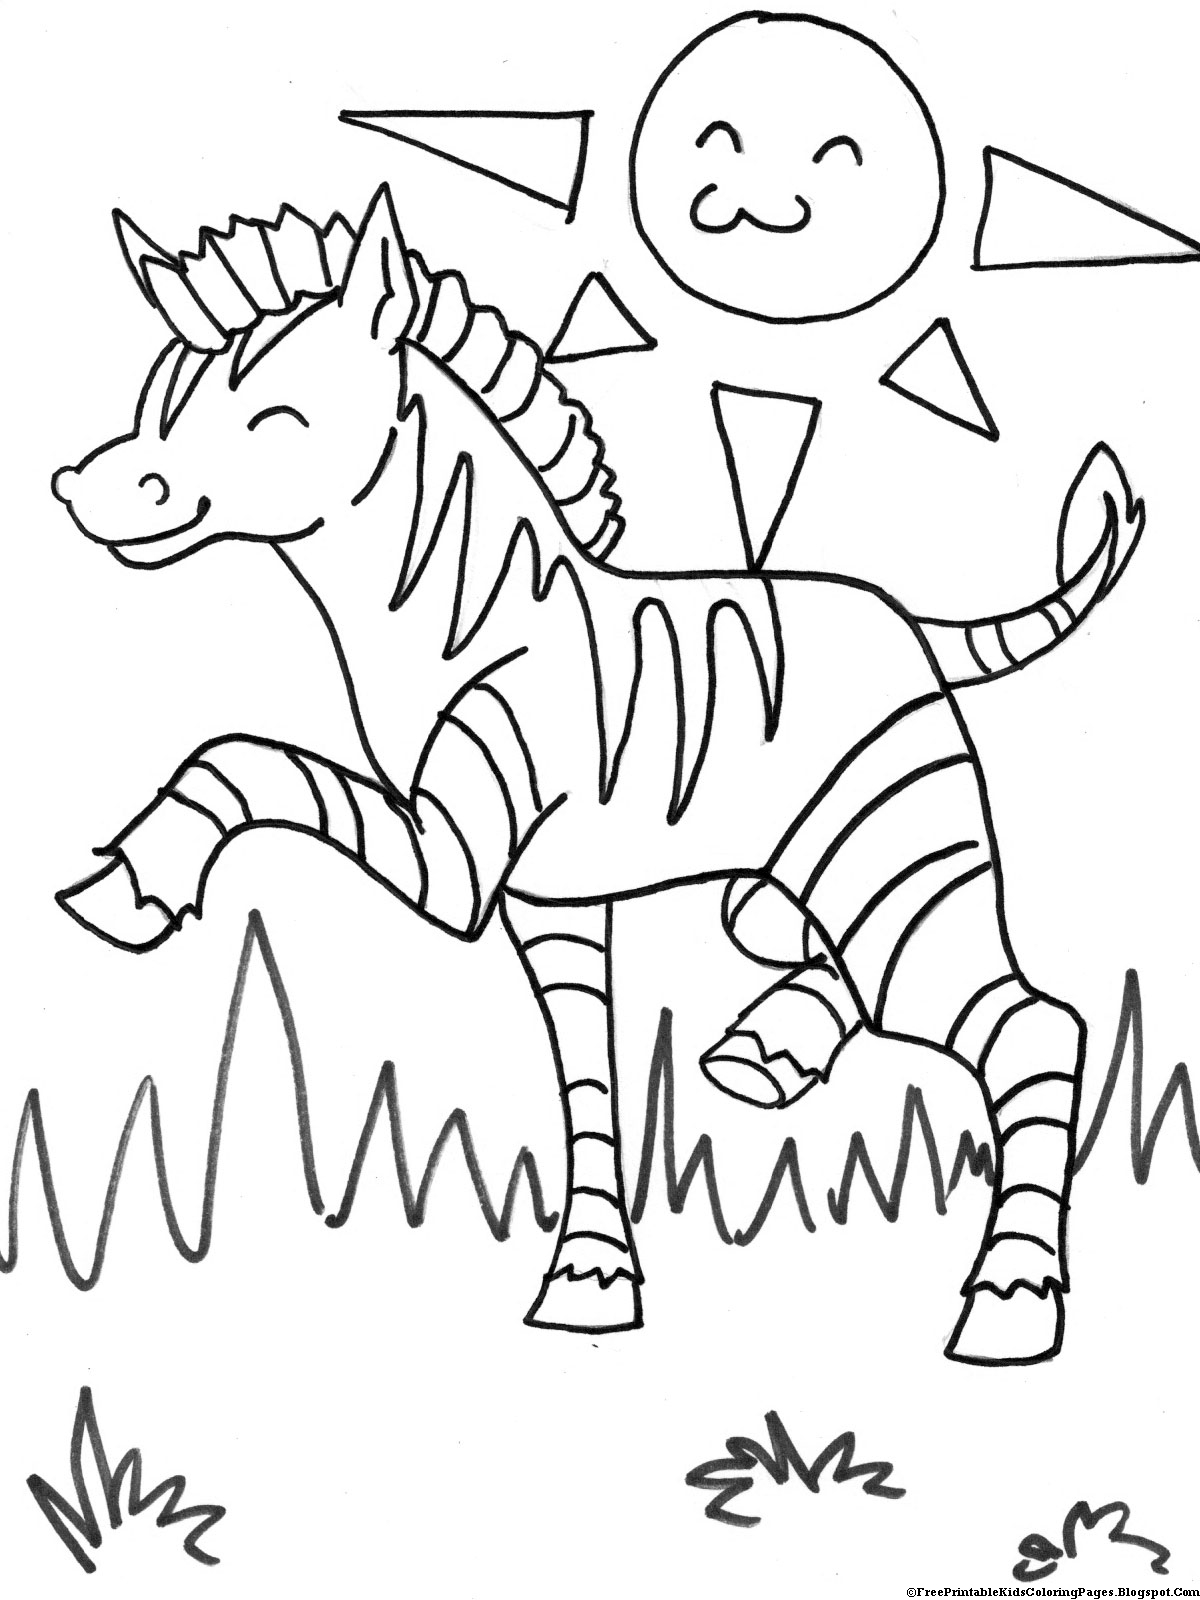 Zebra coloring pages free printable kids coloring pages Coloring book zebra